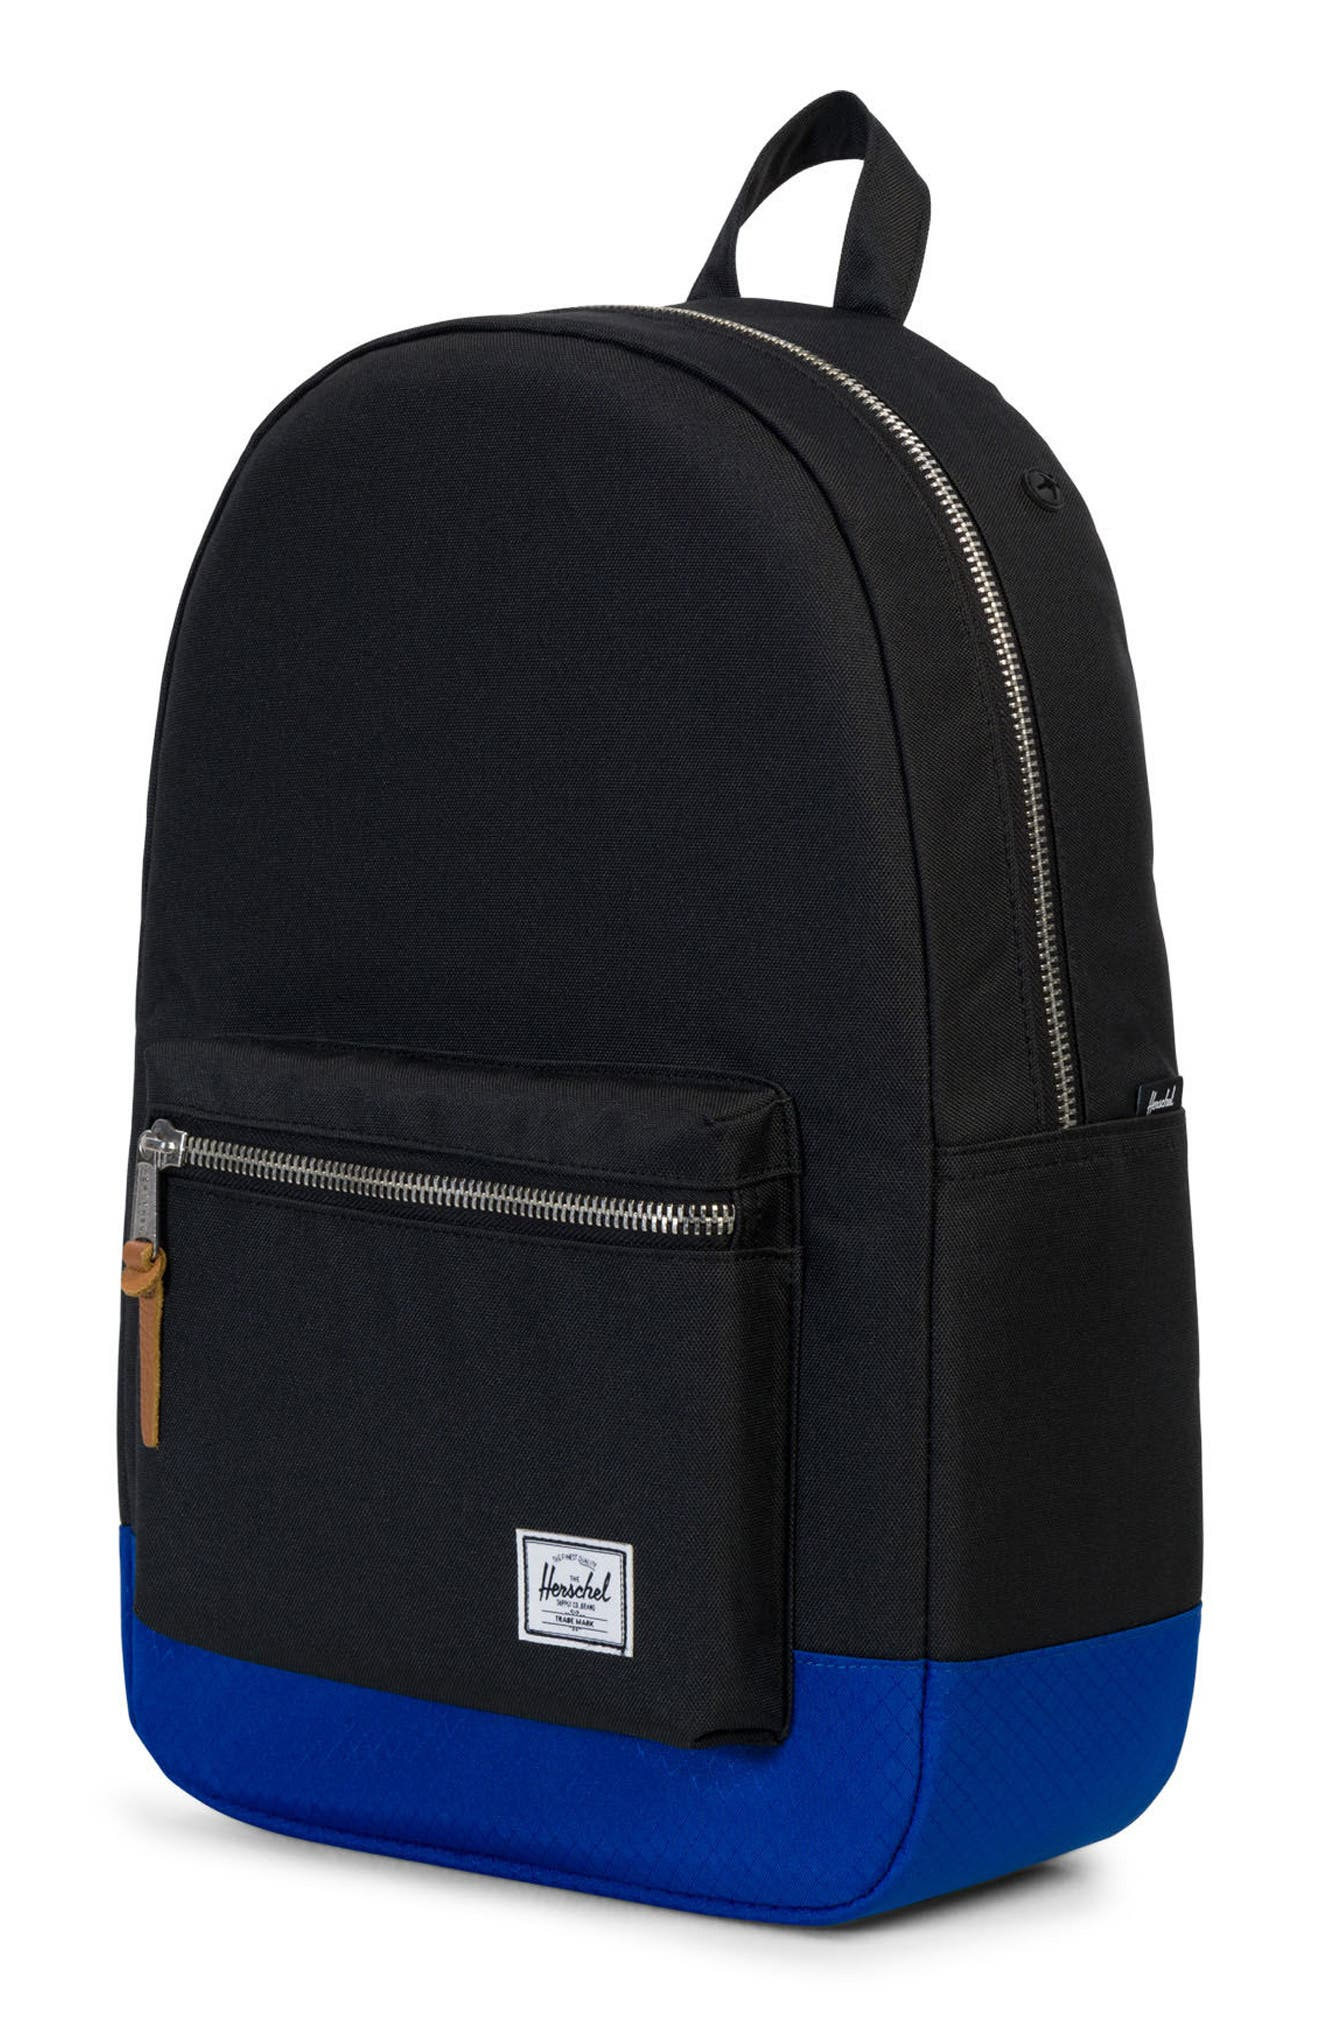 Settlement Backpack,                             Alternate thumbnail 4, color,                             Black/ Surf The Web